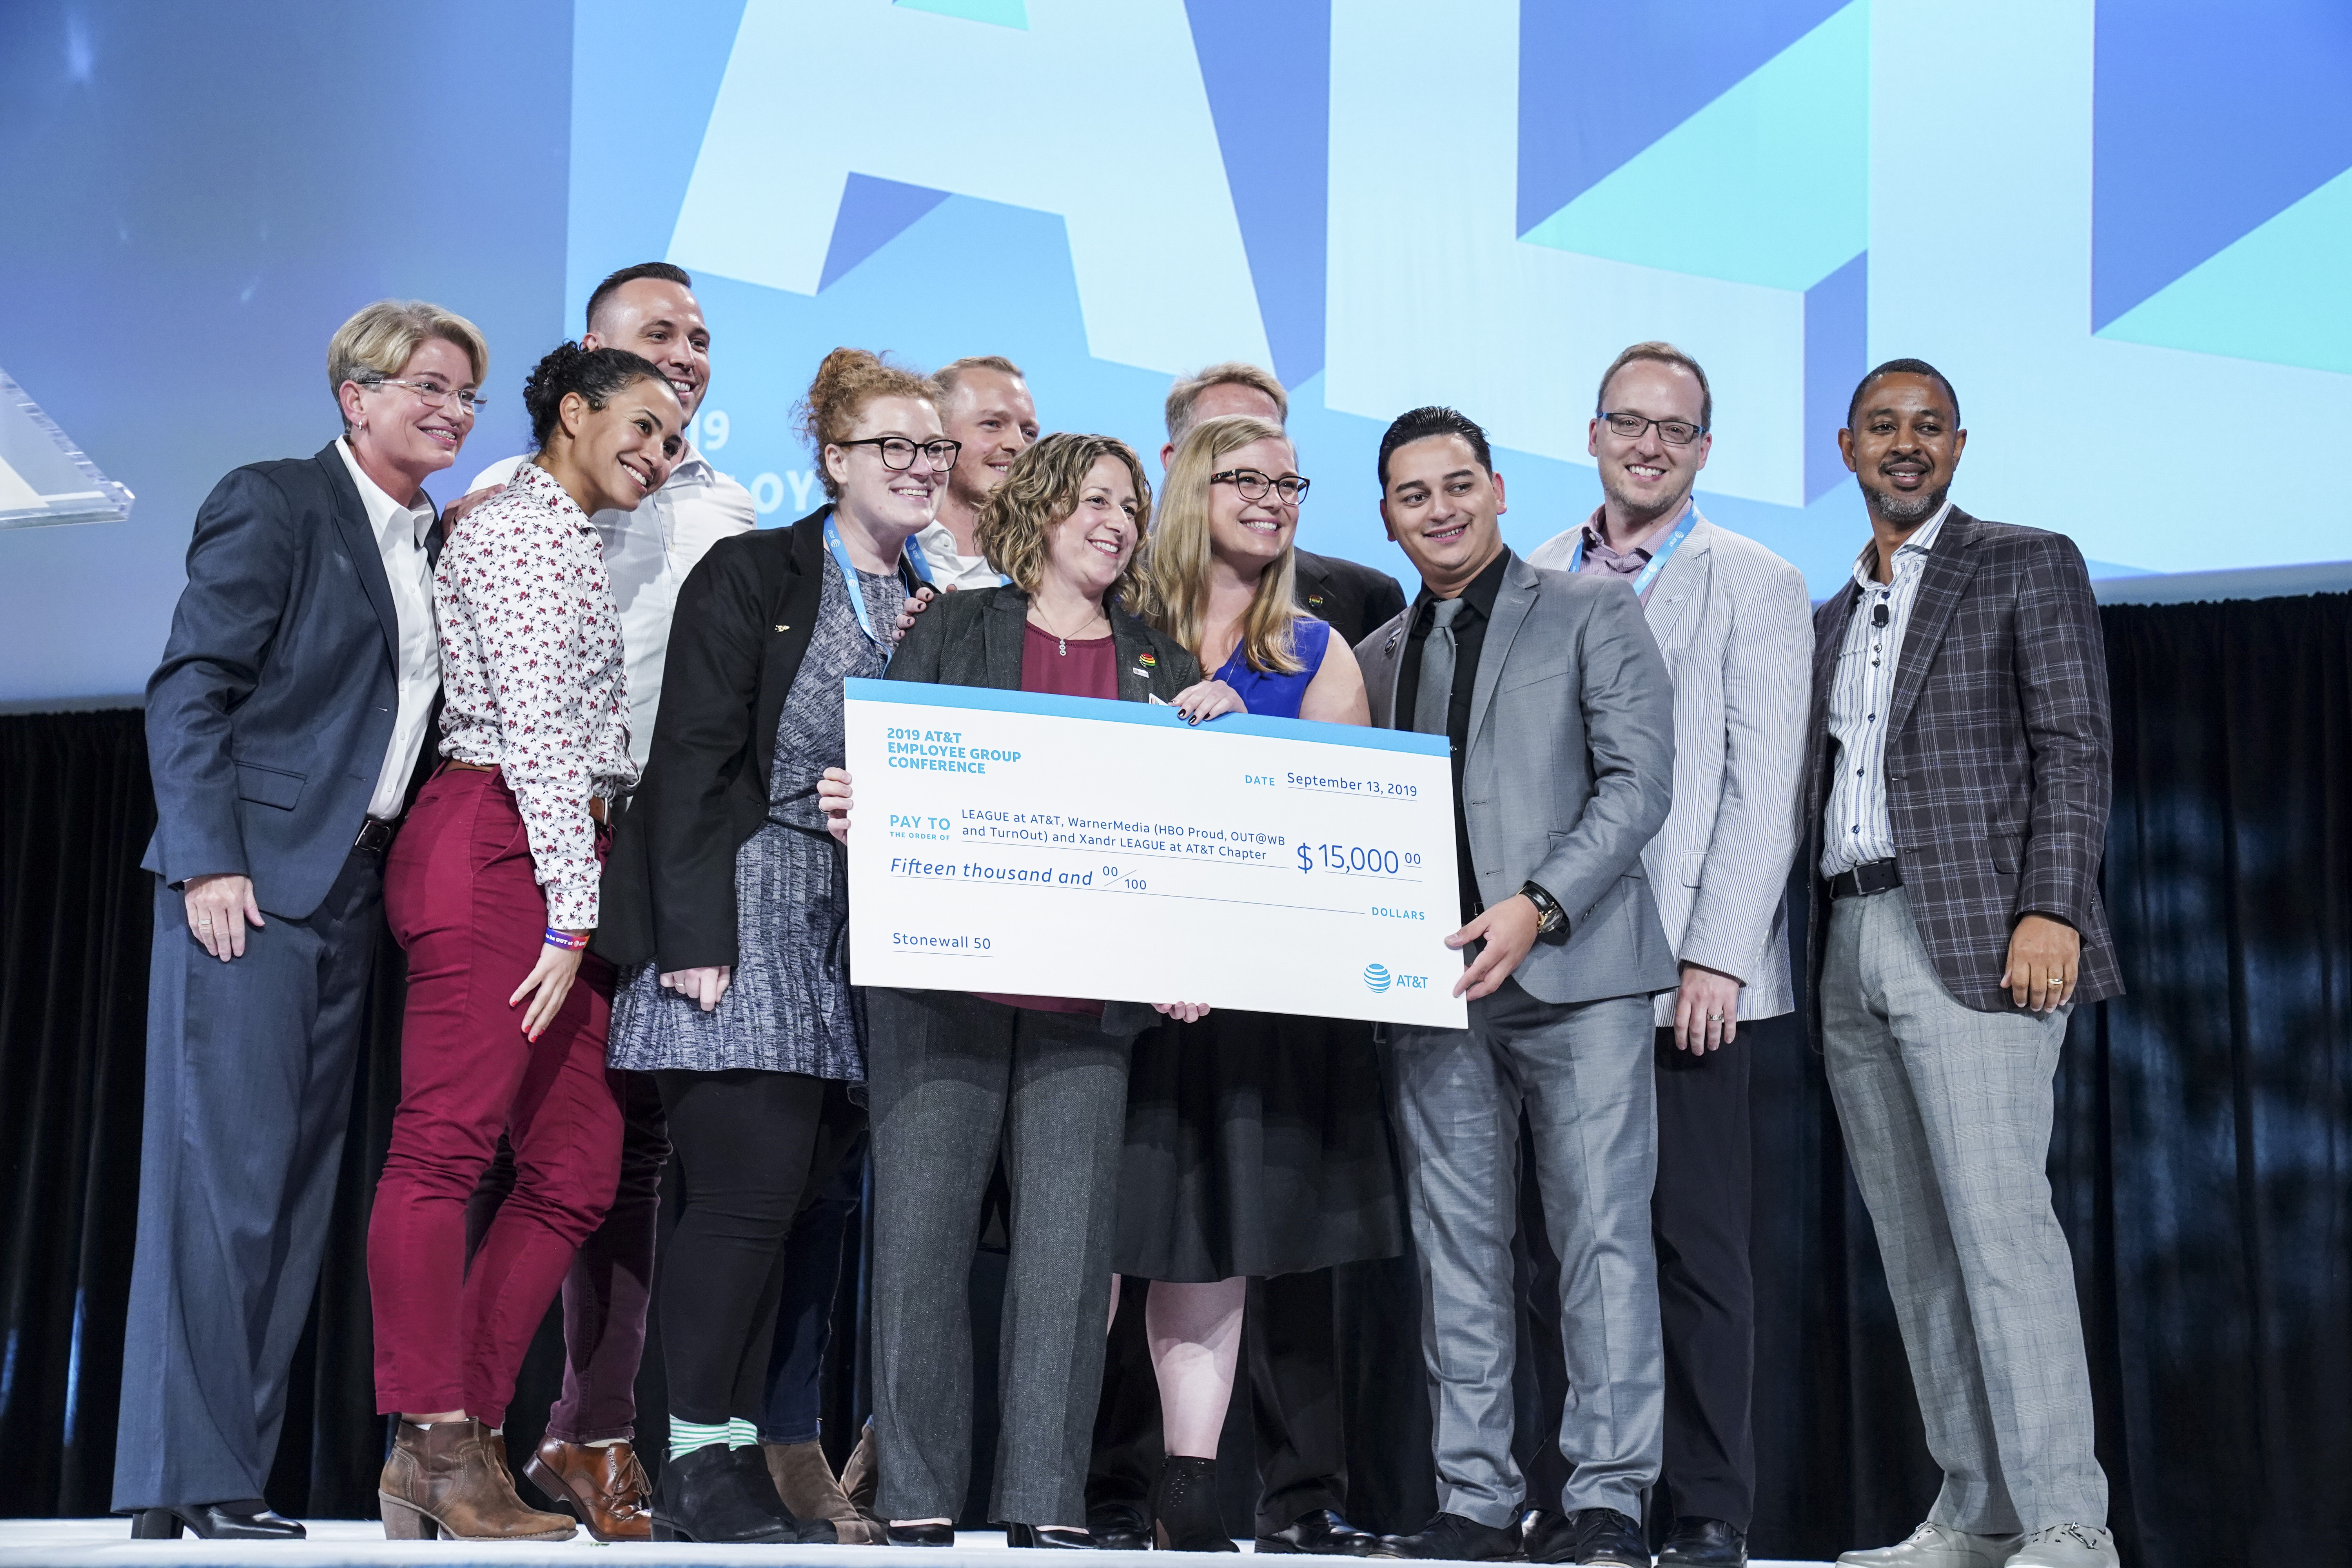 WarnerMedia 2019 AT&T Employee Group Conference